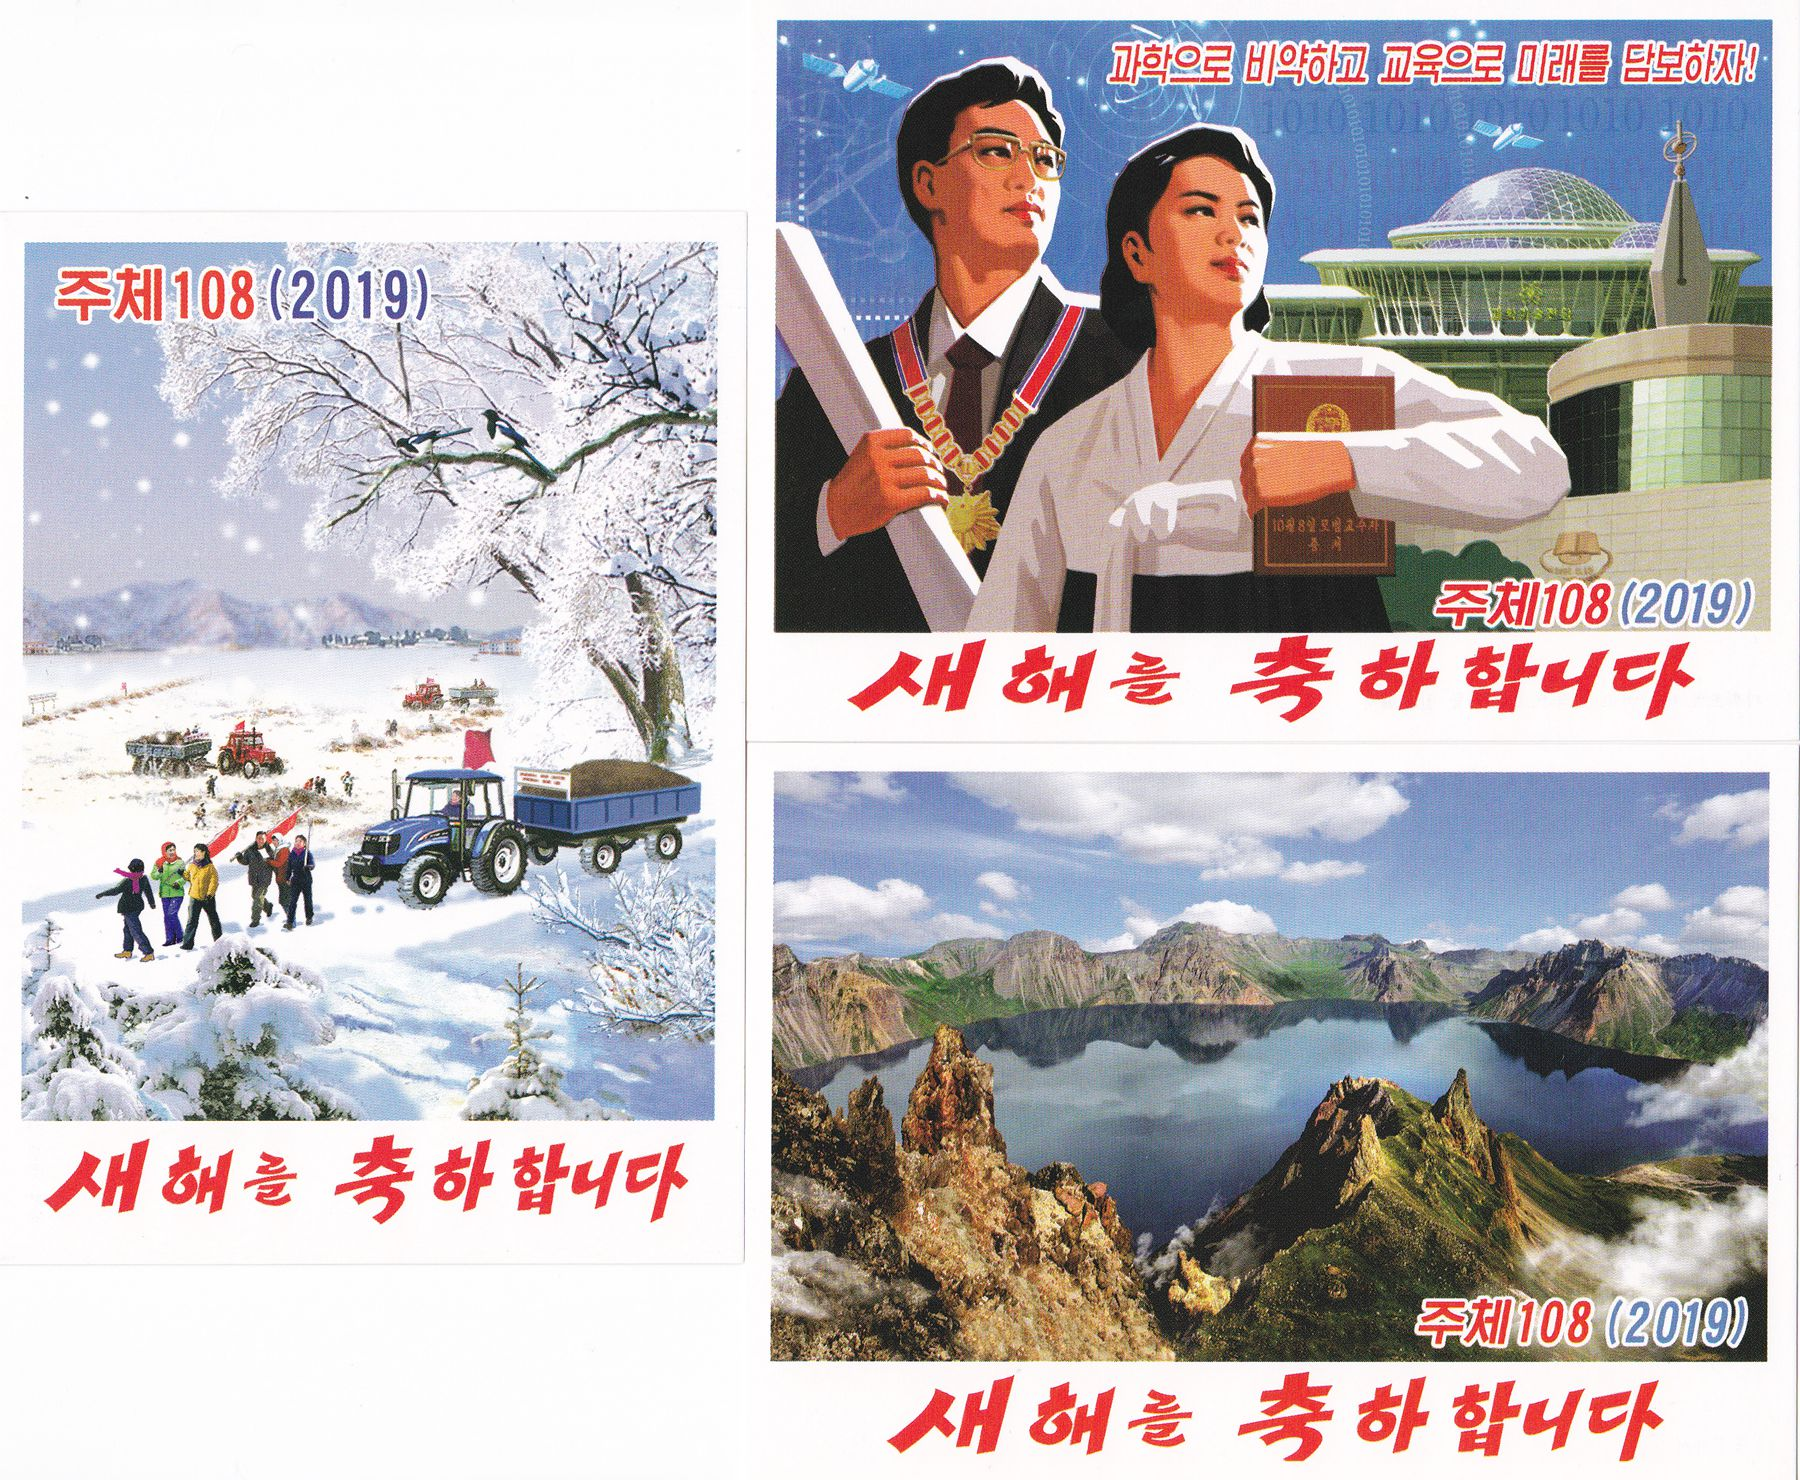 L9394, Korea 2019 Happy New Year Postal Card, 5 pcs